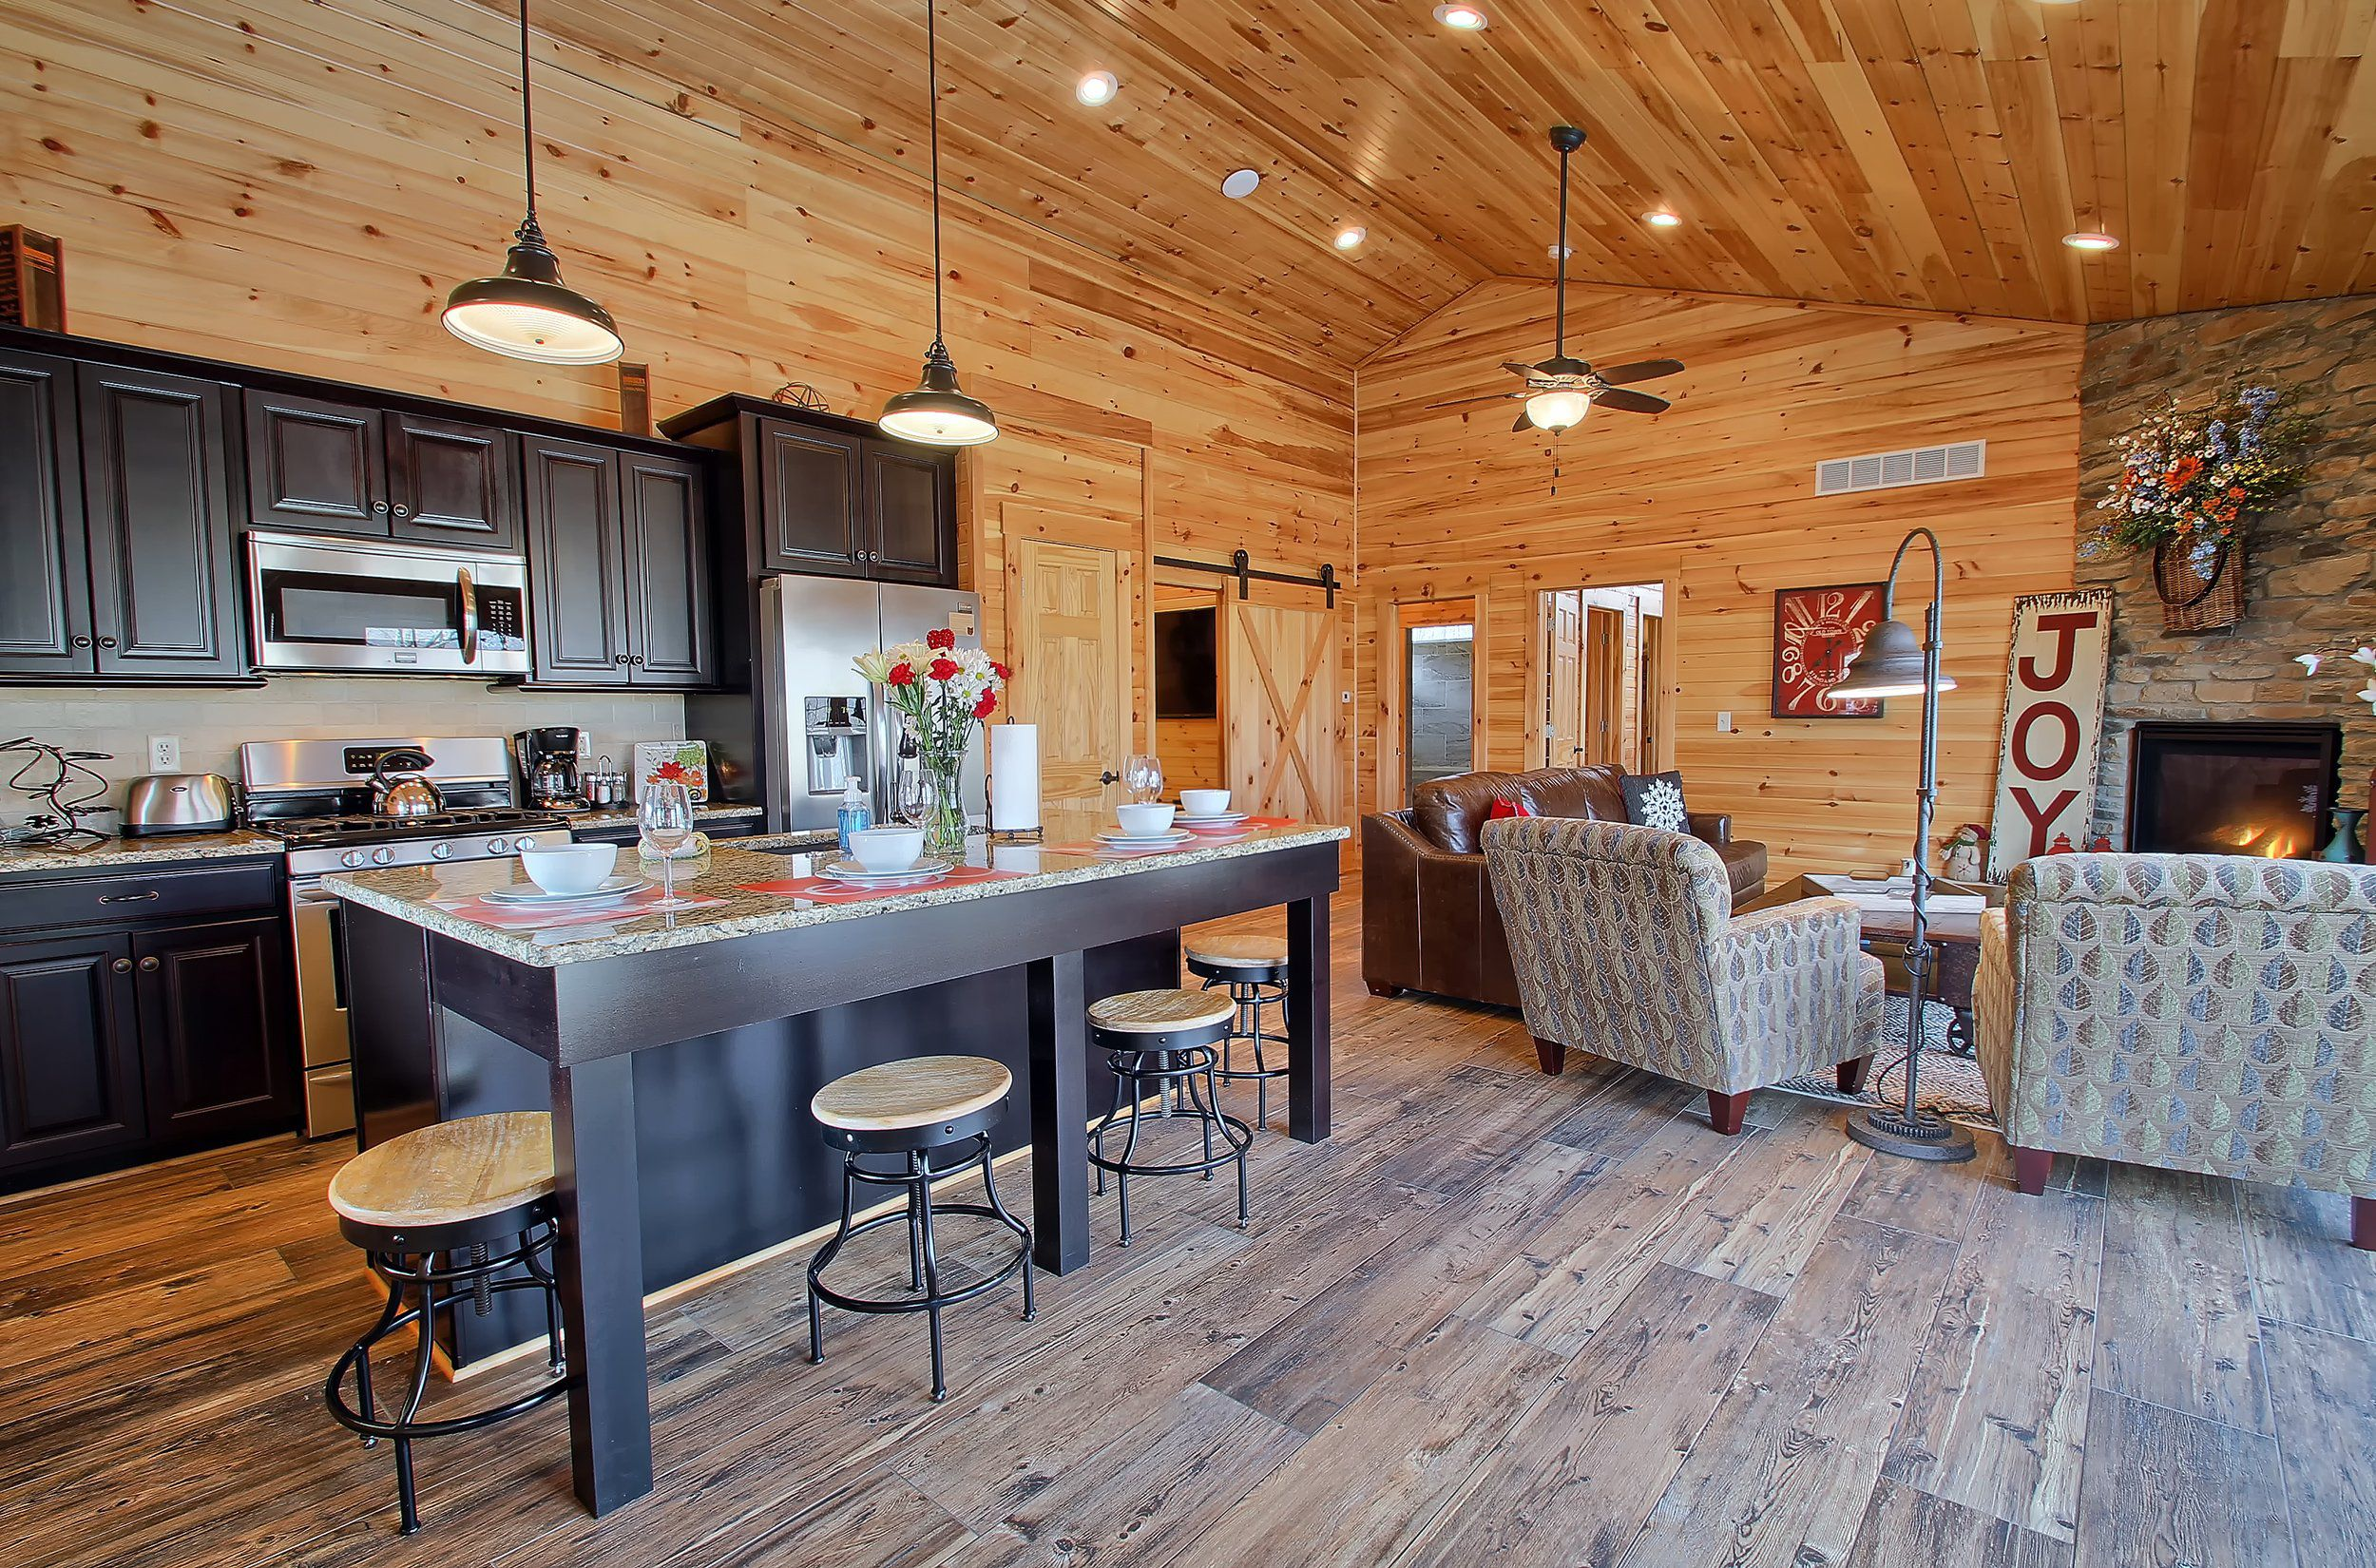 The Bookers Luxury Cabin Hocking Hills Luxury Lodges Amp Cabins